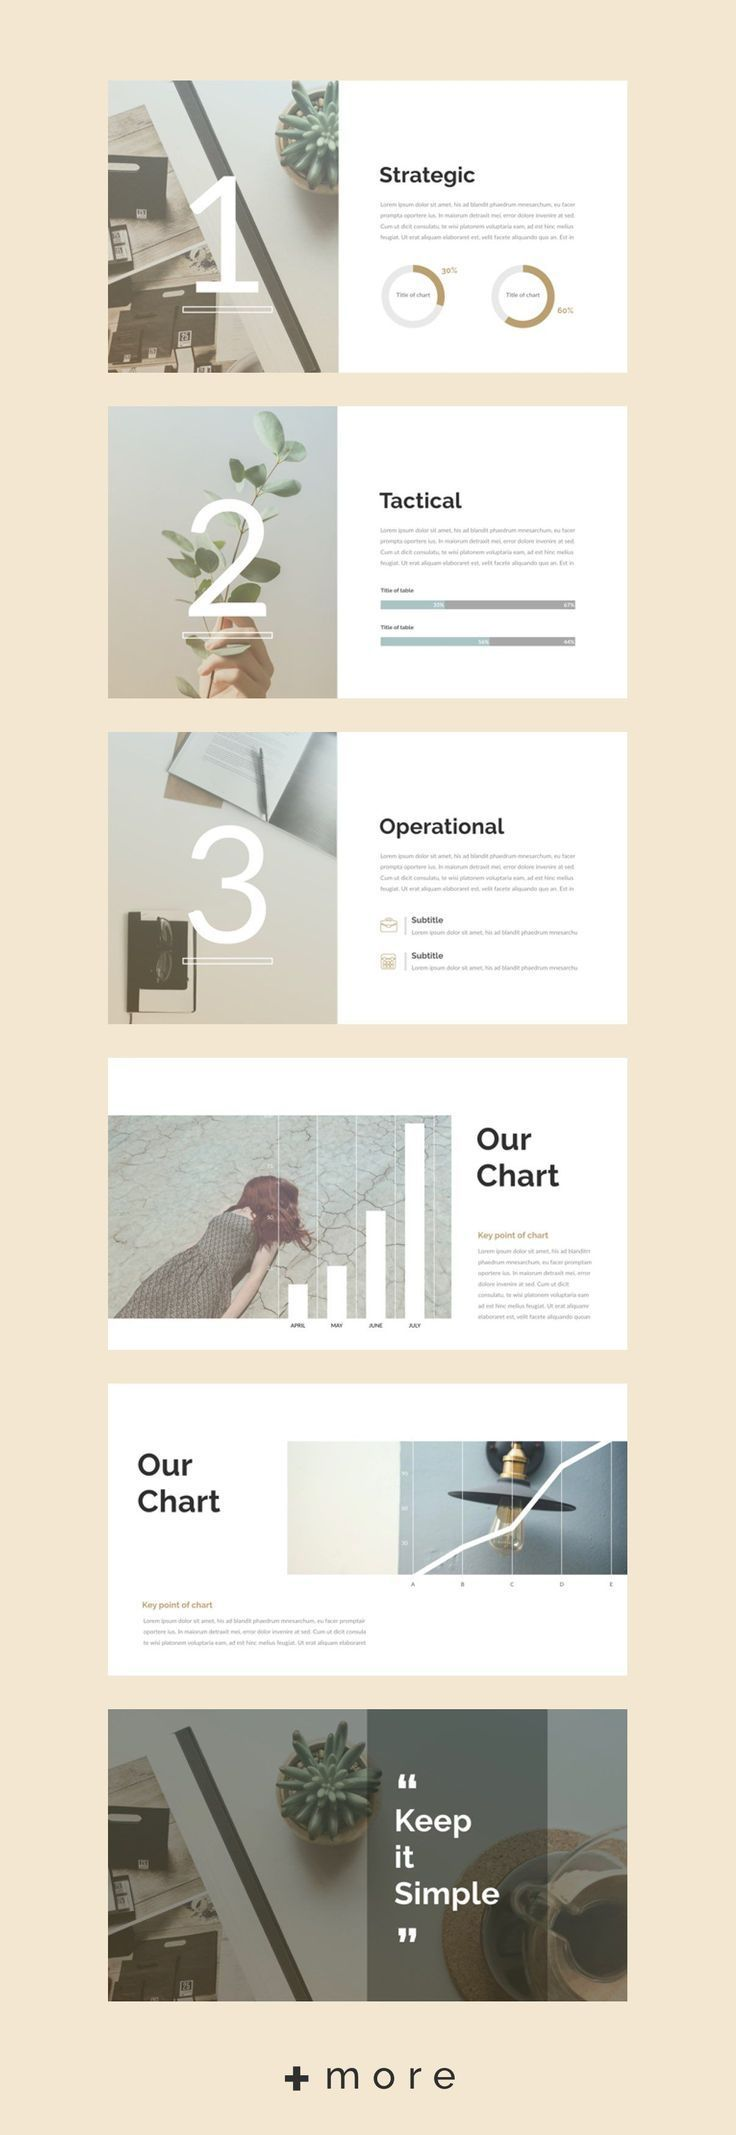 Presentation template simple business planning keynote ppt presentation template simple business planning keynote ppt marketing stopboris Choice Image